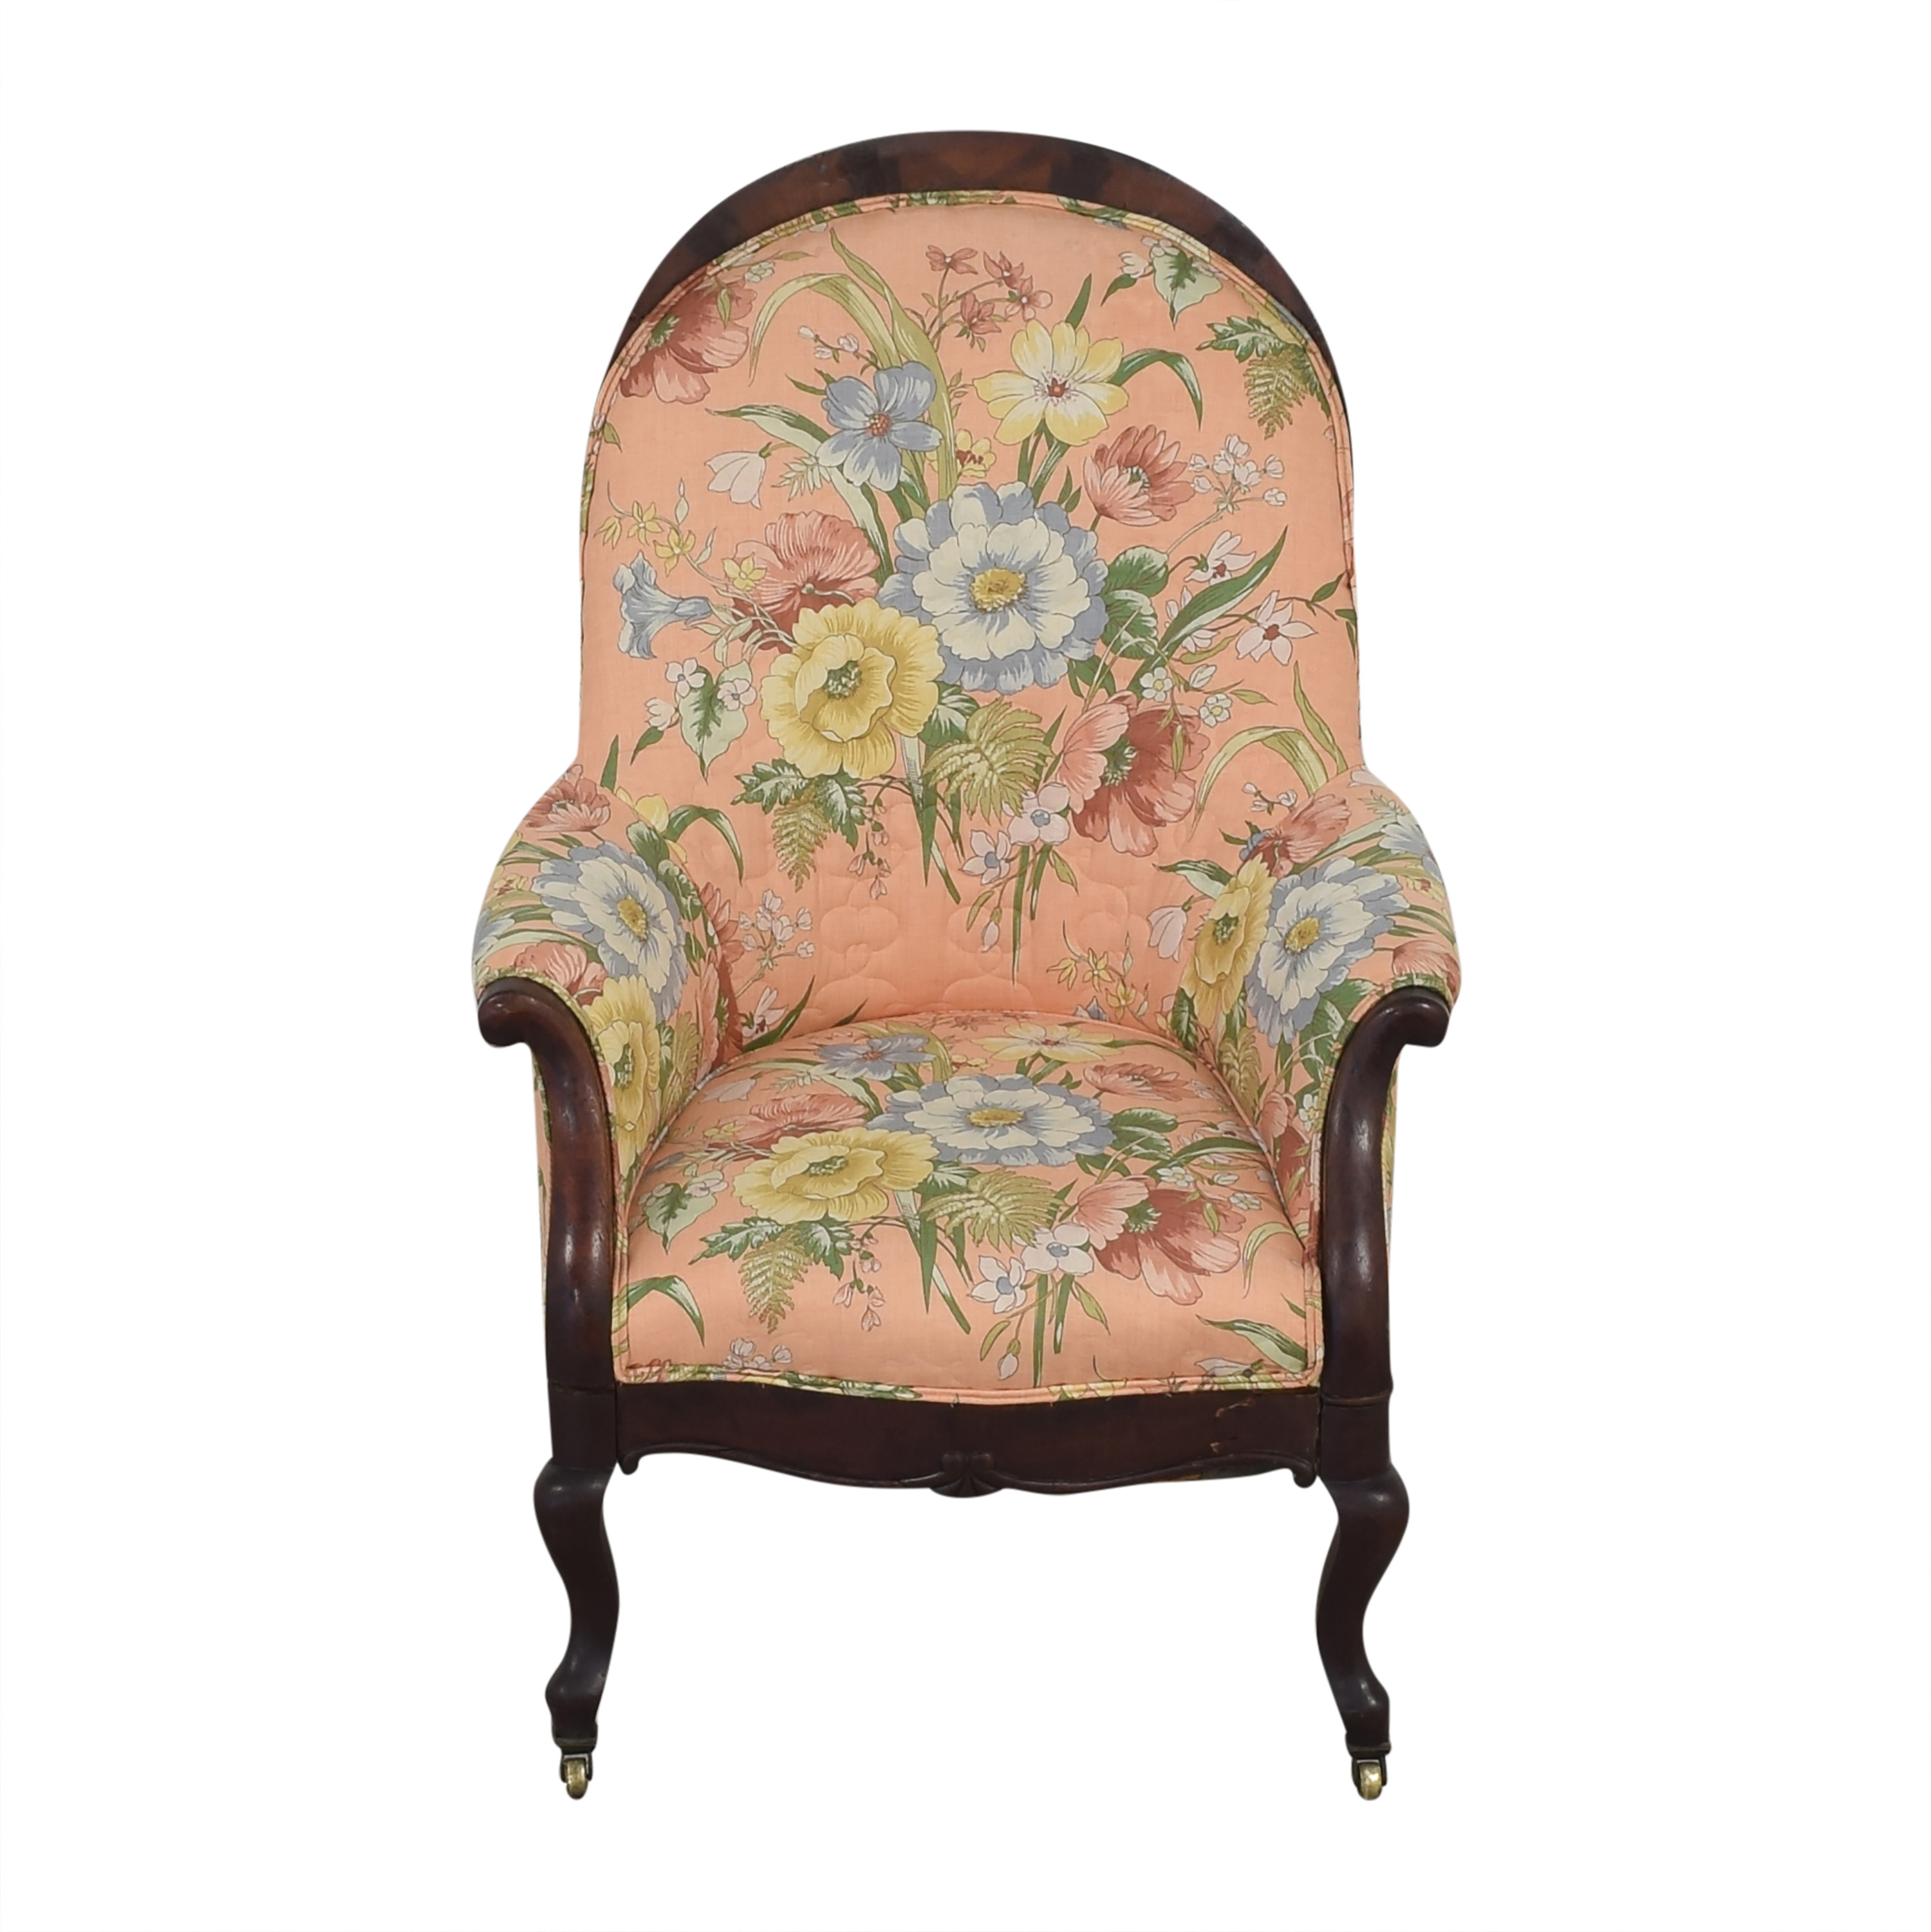 Vintage Style Upholstered Accent Chair ma